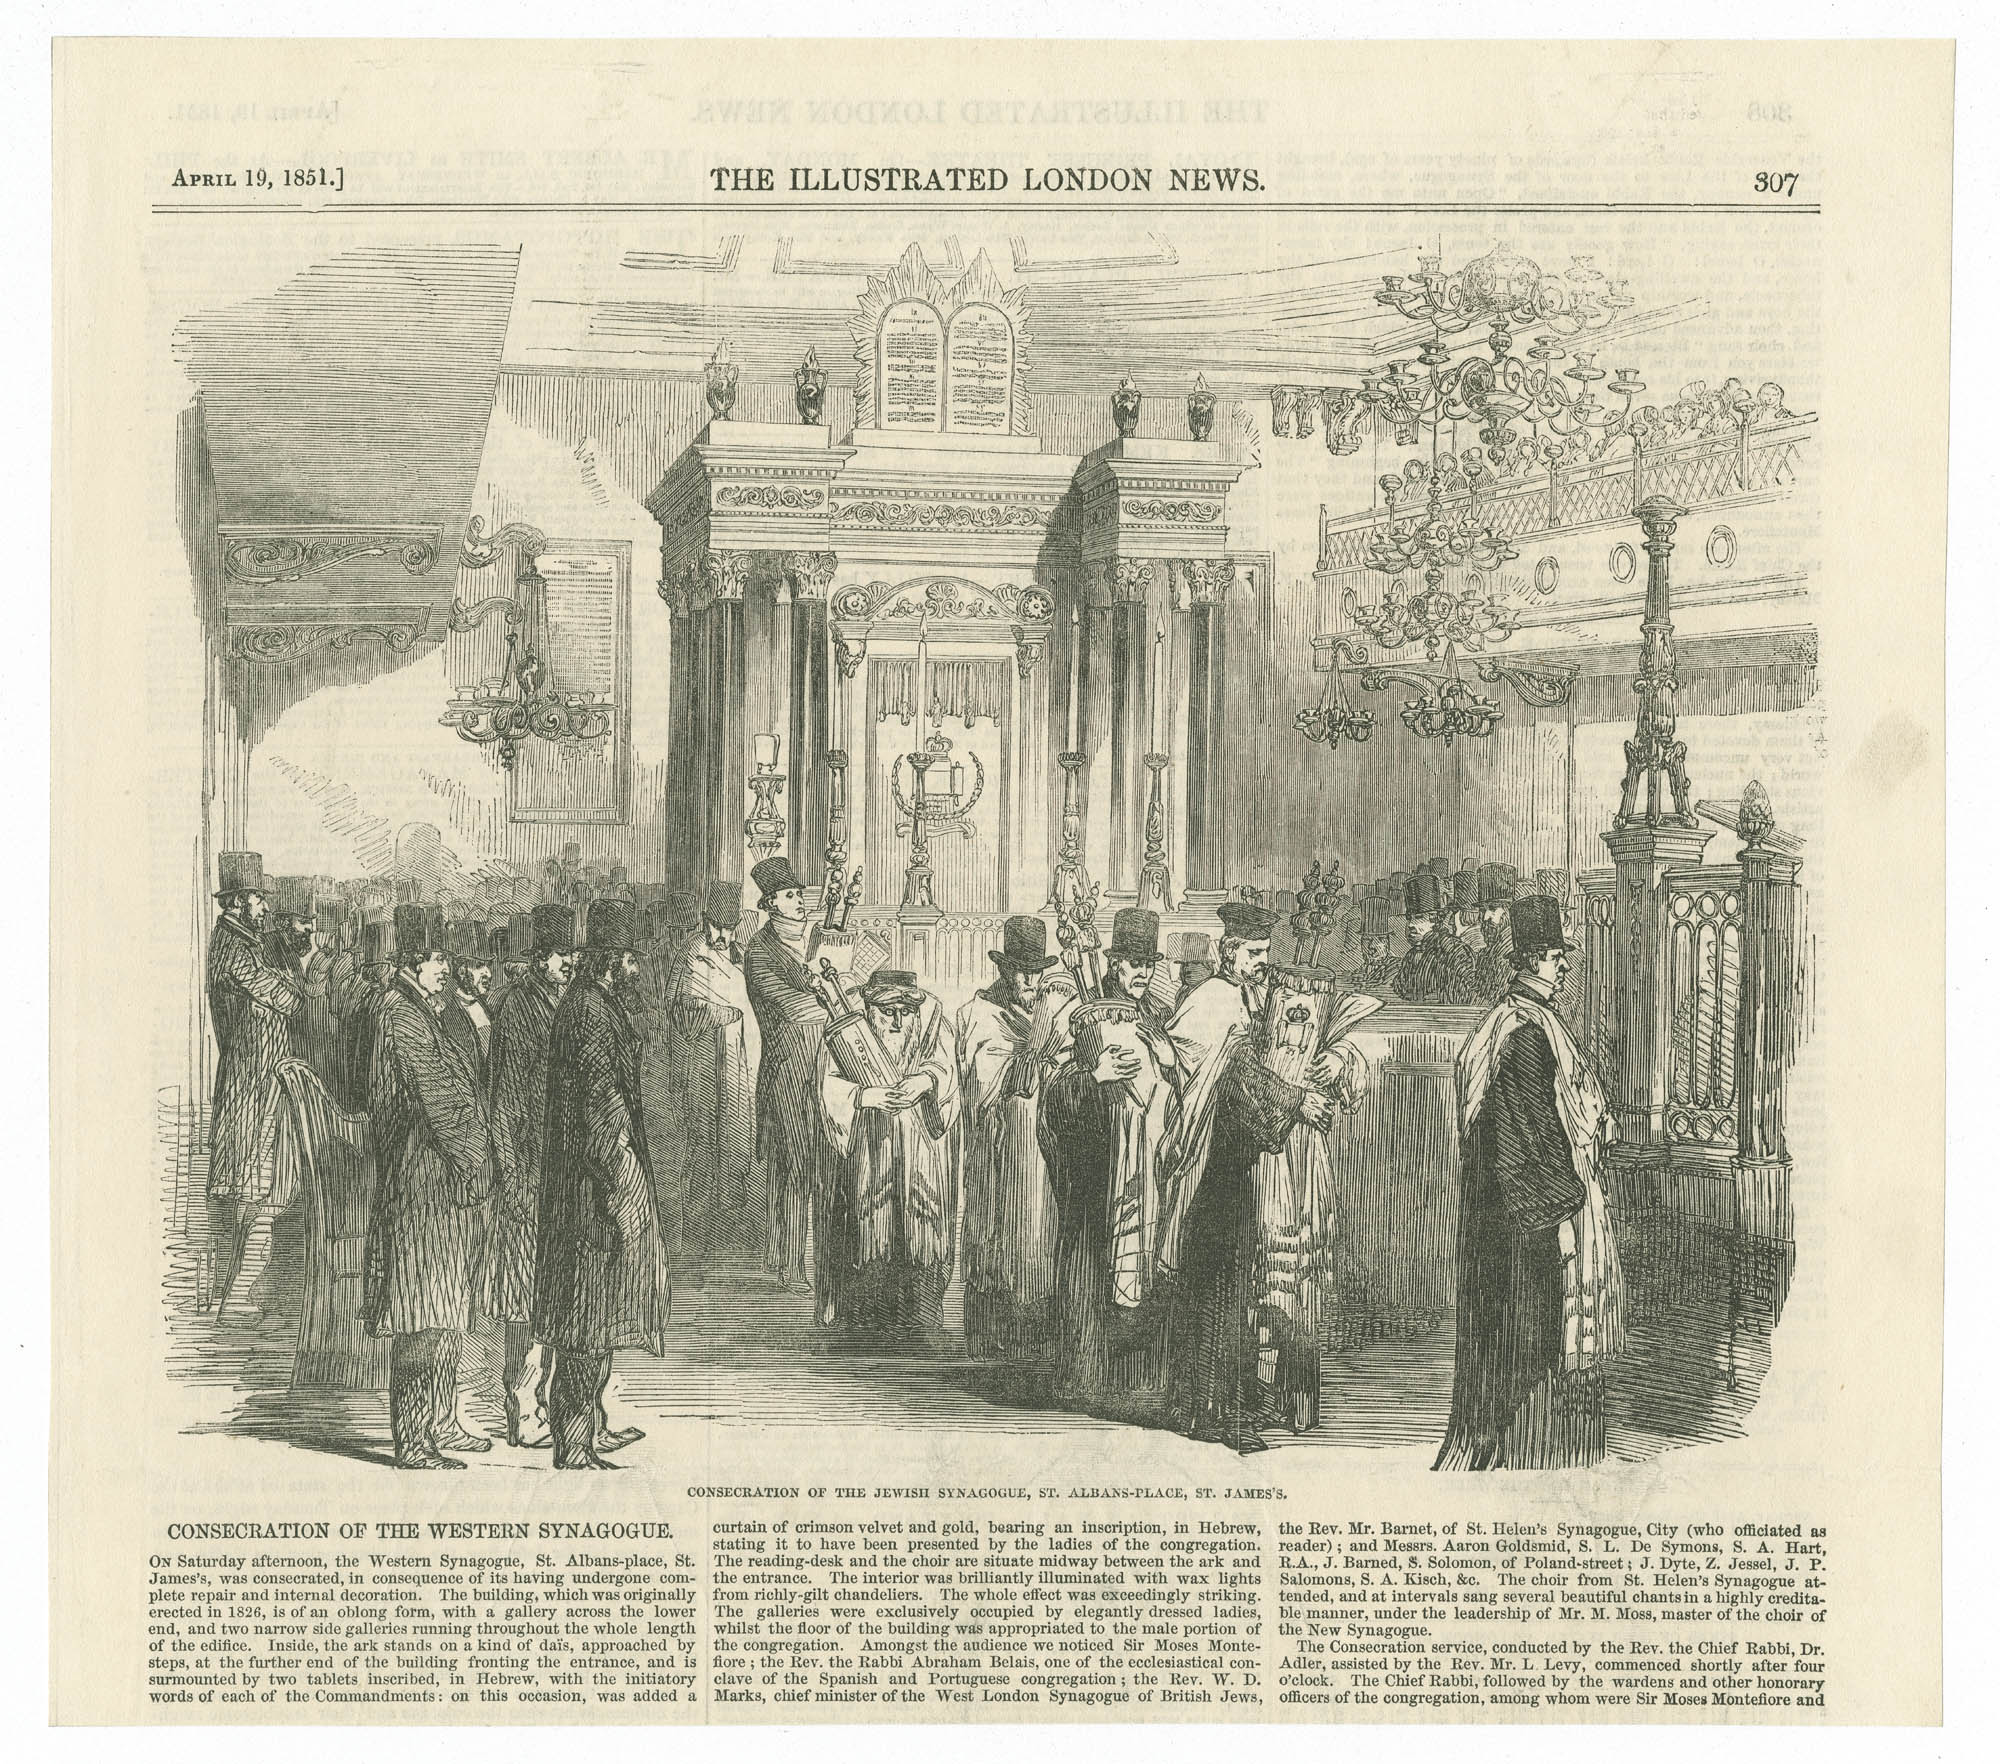 Consecration of the Jewish Synagogue, St. Albans Place, St. James's